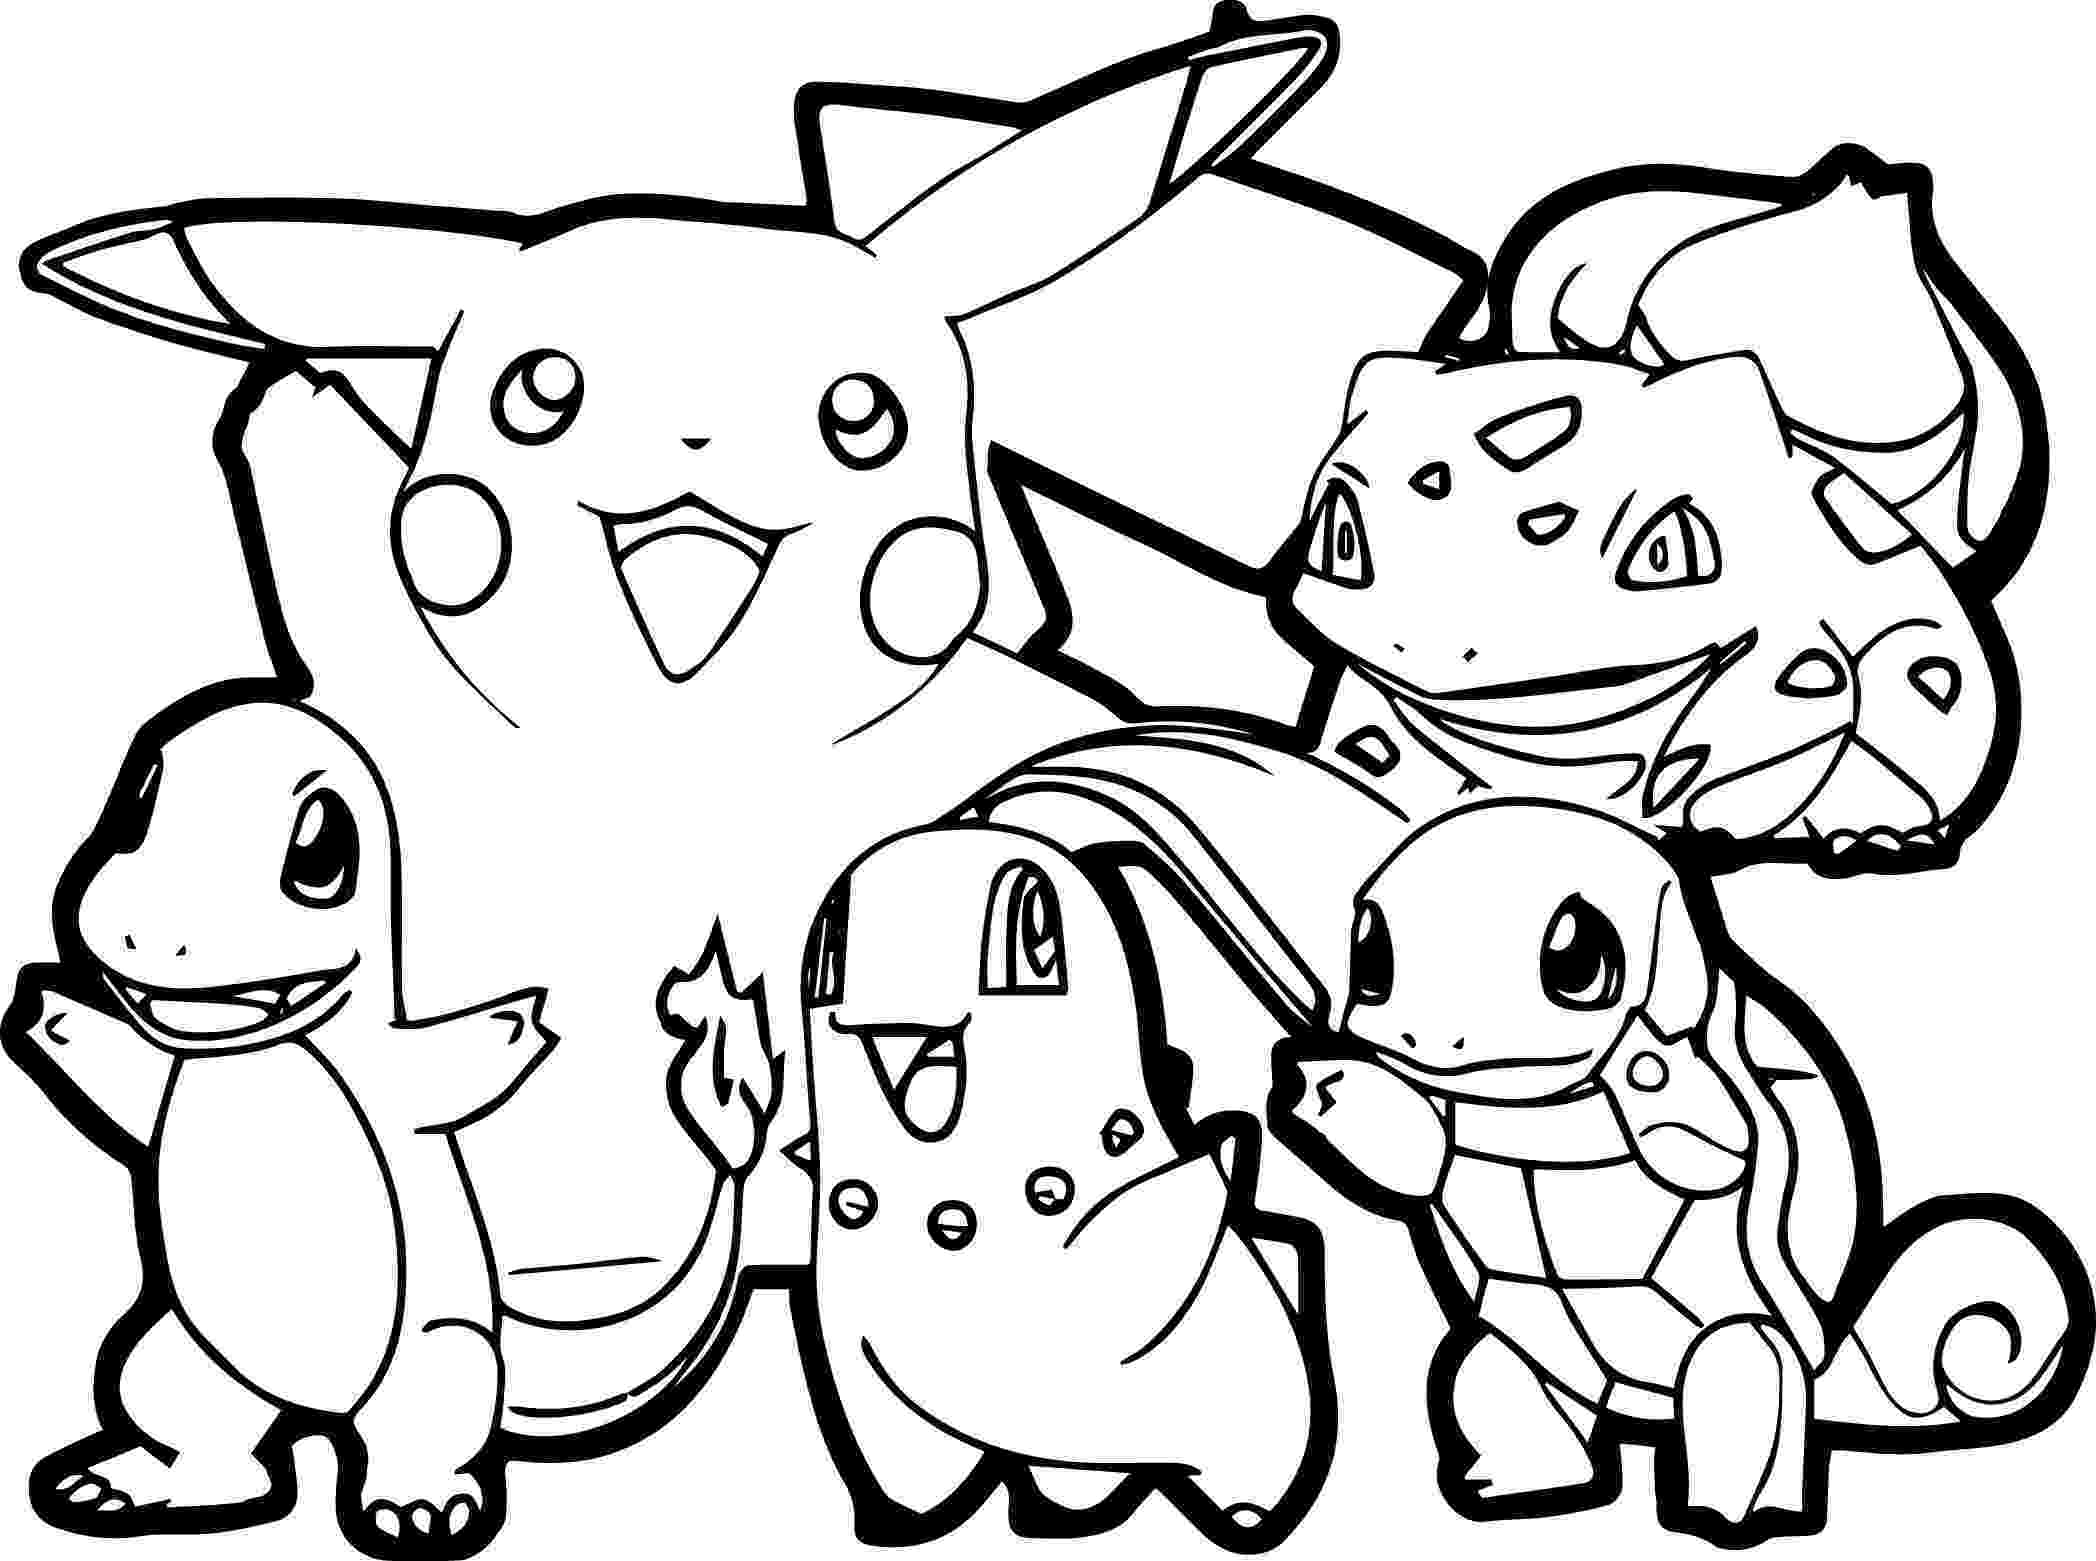 pokemon colouring pages all legendary pokemon coloring pages coloring home colouring pokemon pages